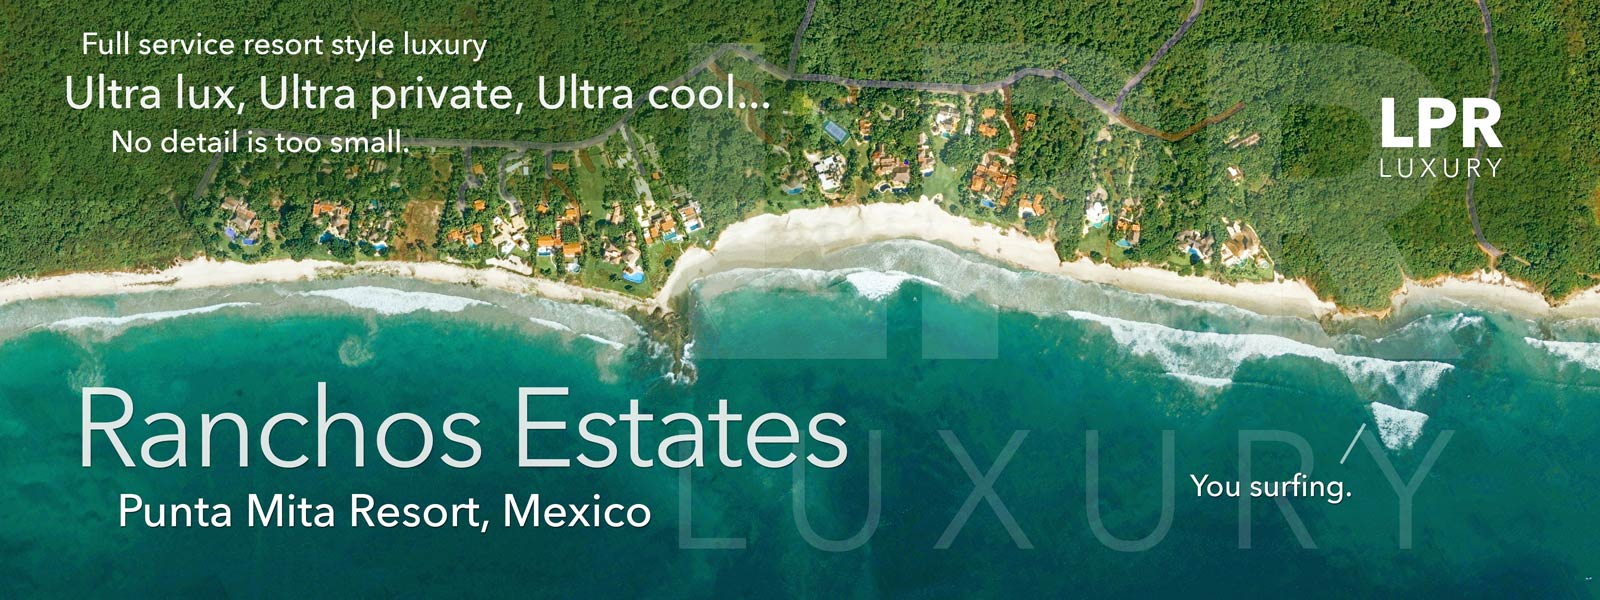 Ranchos Estates - Luxury Villas of the Punta Mita Resort, Mexico